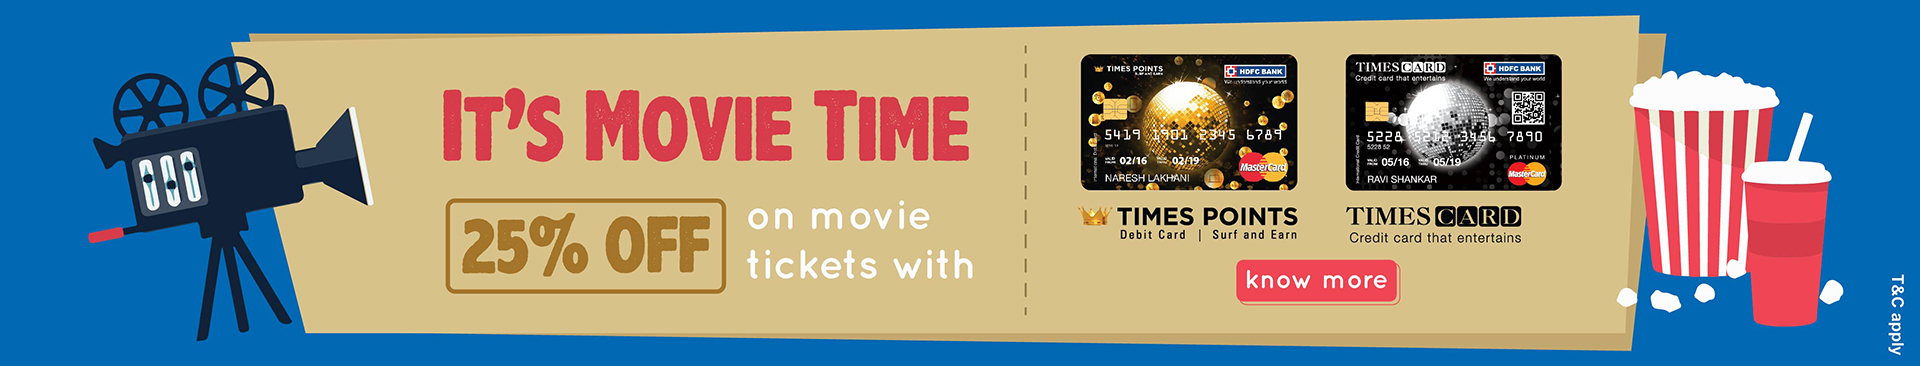 Times Card